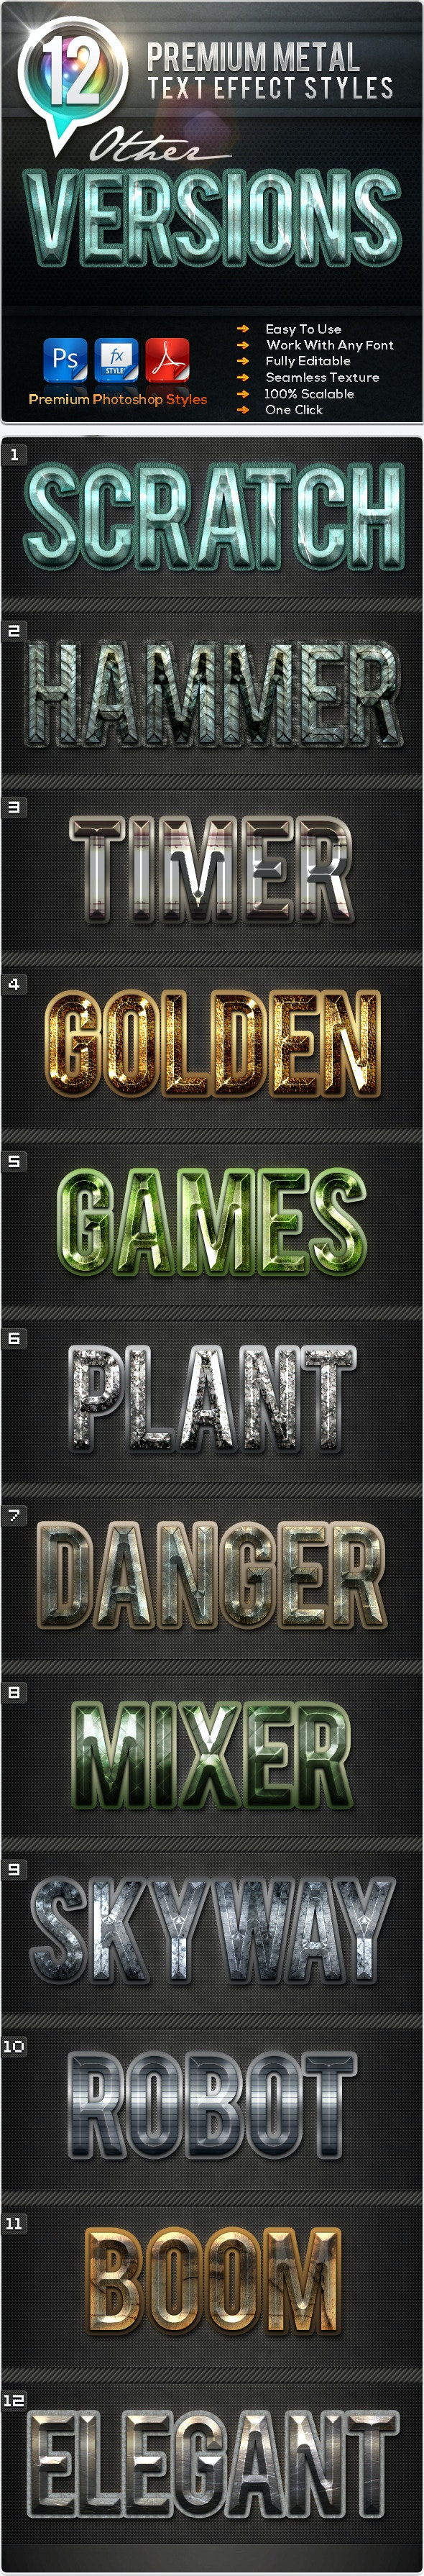 12 Premium Metal Other Versions - Text Effects Styles